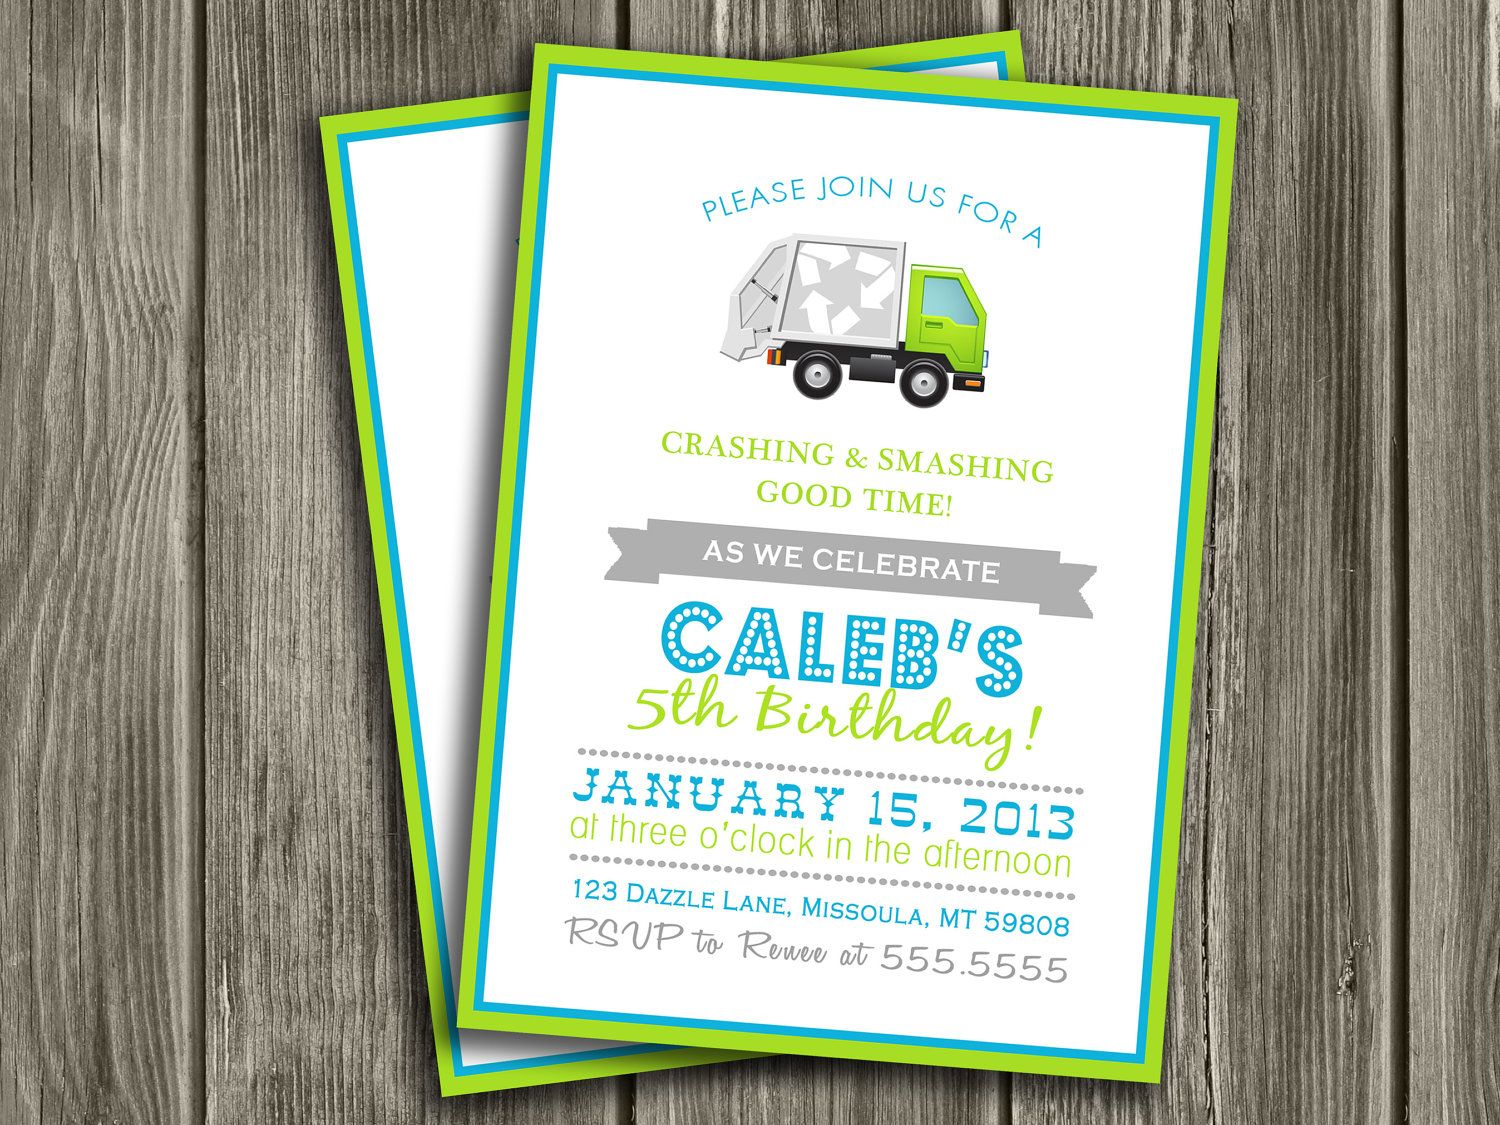 Garbage truck birthday invitation free thank you card included garbage truck birthday invitation free thank you card included 1500 via etsy filmwisefo Image collections